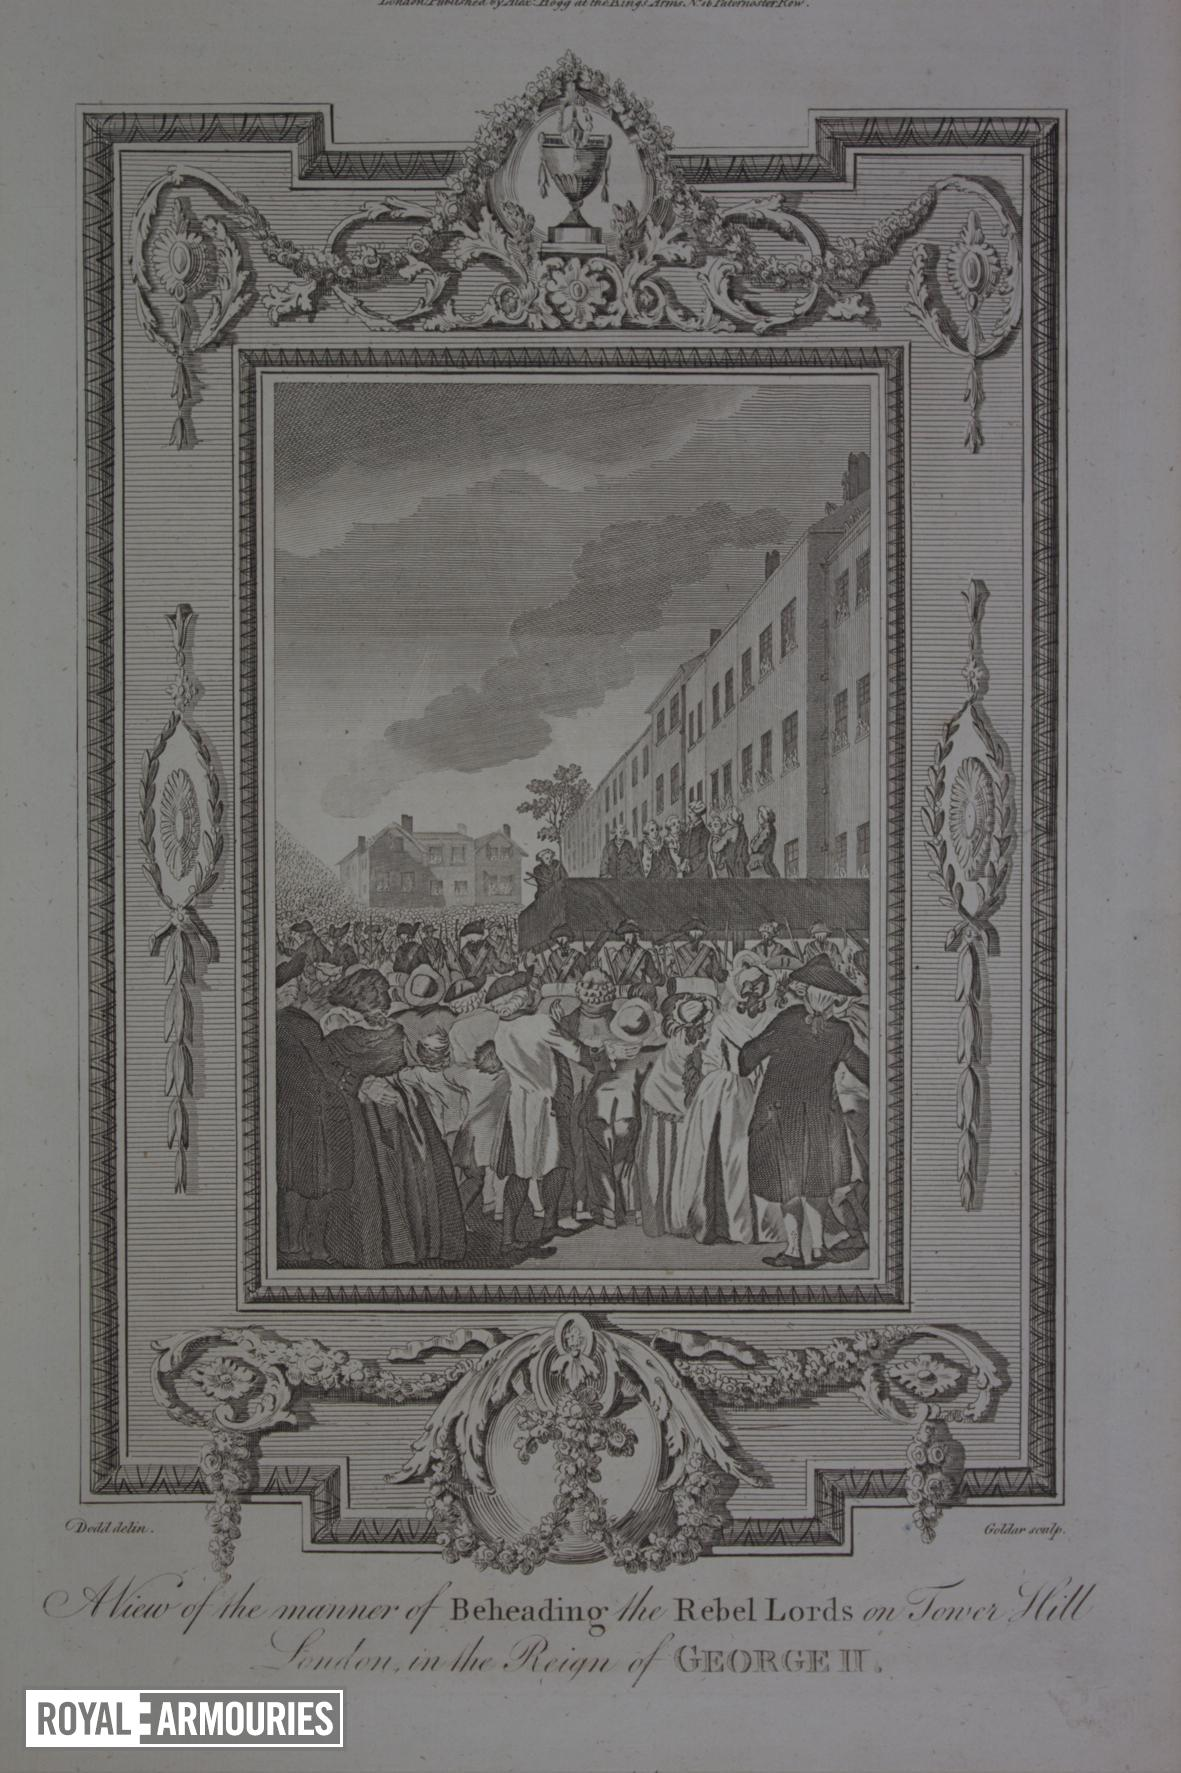 Print engraved print, about 1784, showing the execution of the rebel lords, 1746.